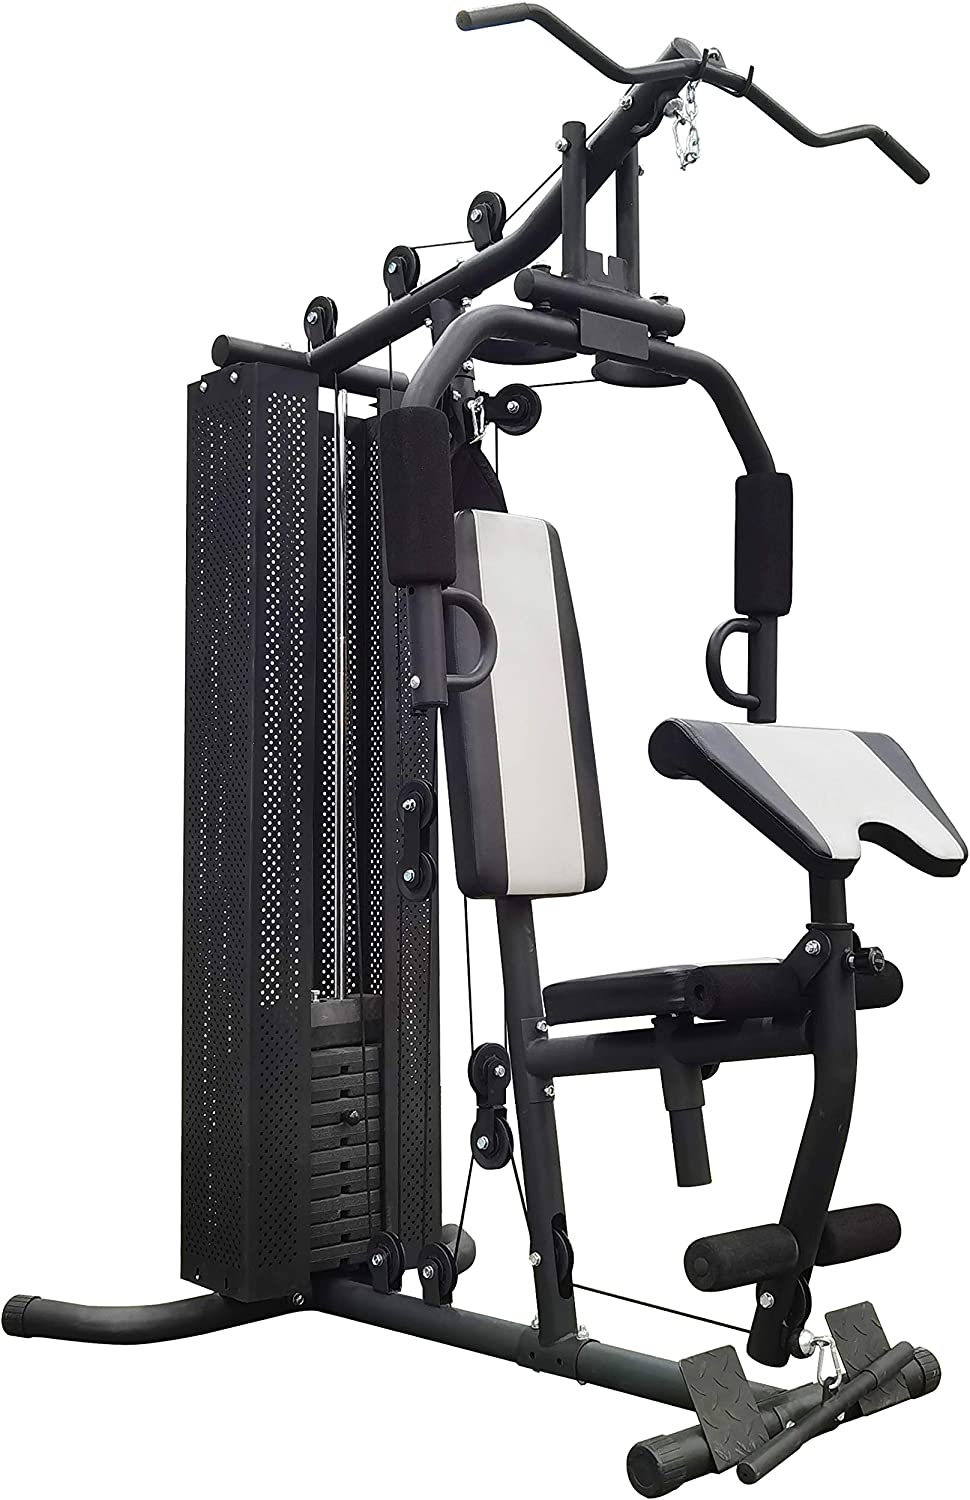 BalanceFrom RS 90 Home Gym System Workout Station with 380LB of Resistance